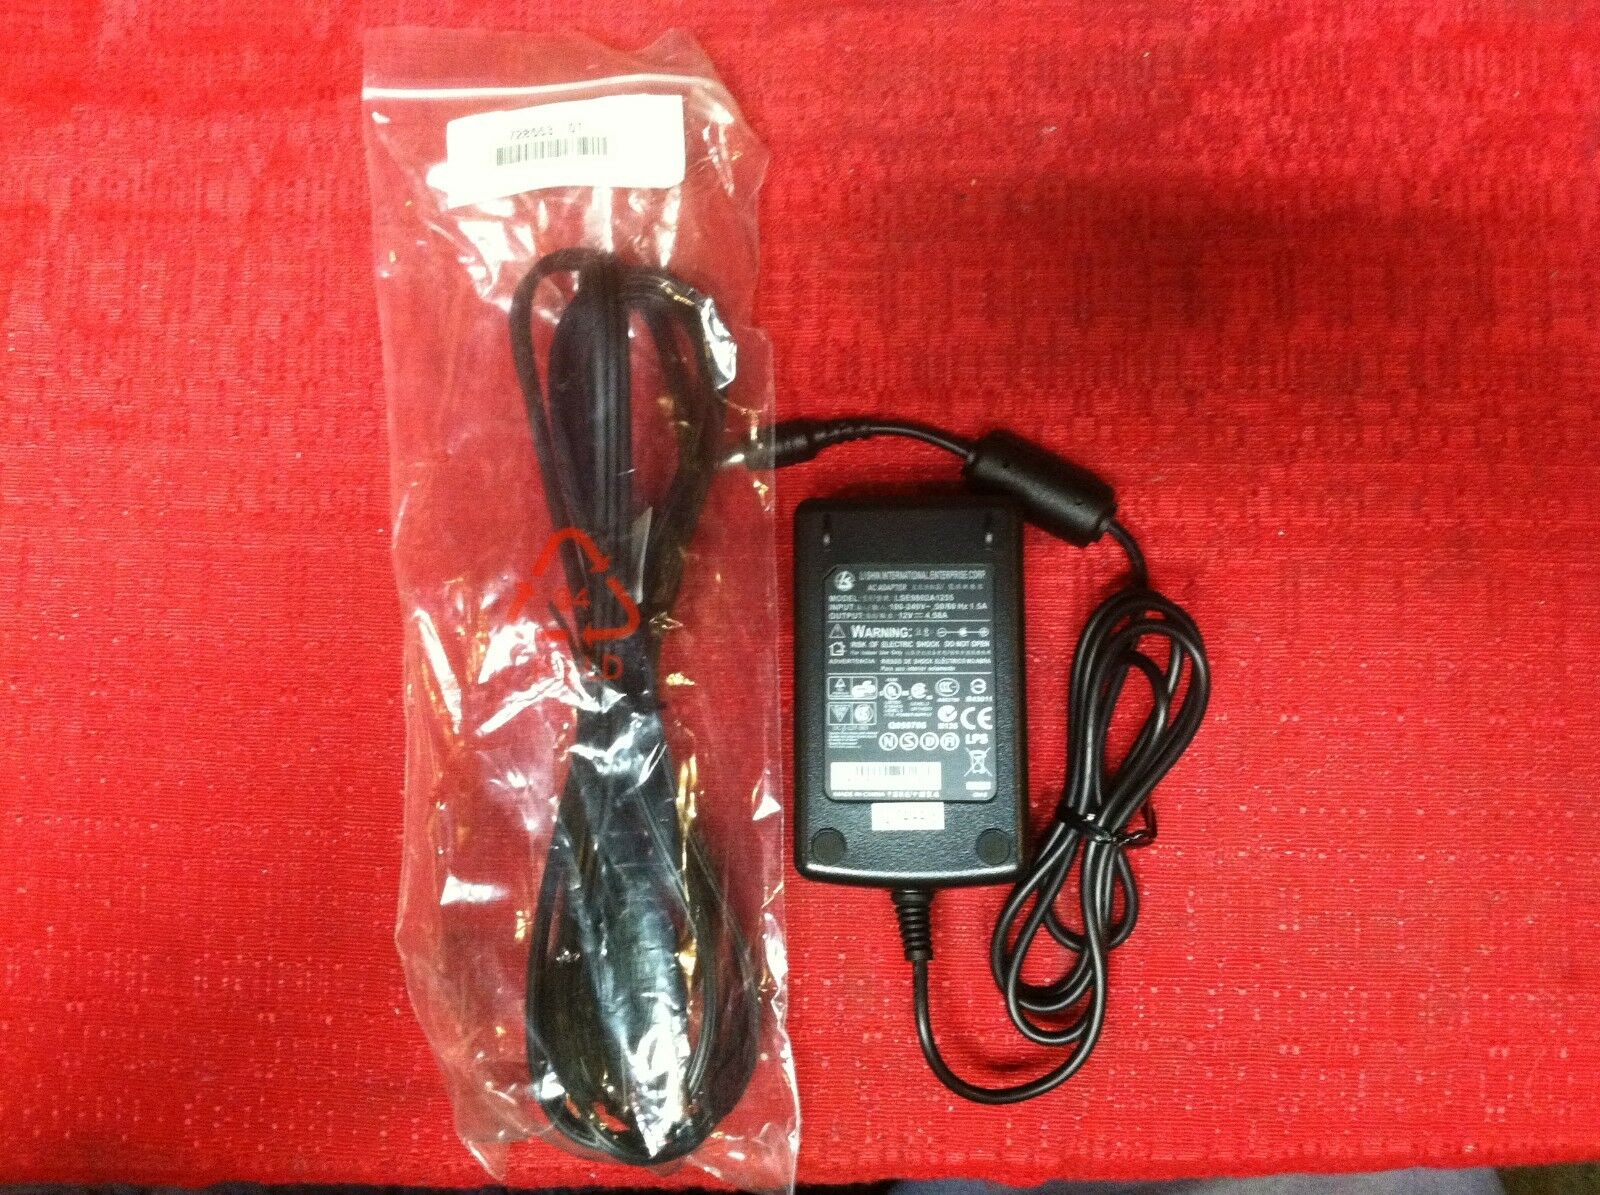 Accessory USA Replacement 4-Pin AC Adapter for Li Shin 0452B1280 Power Supply Cord Charger